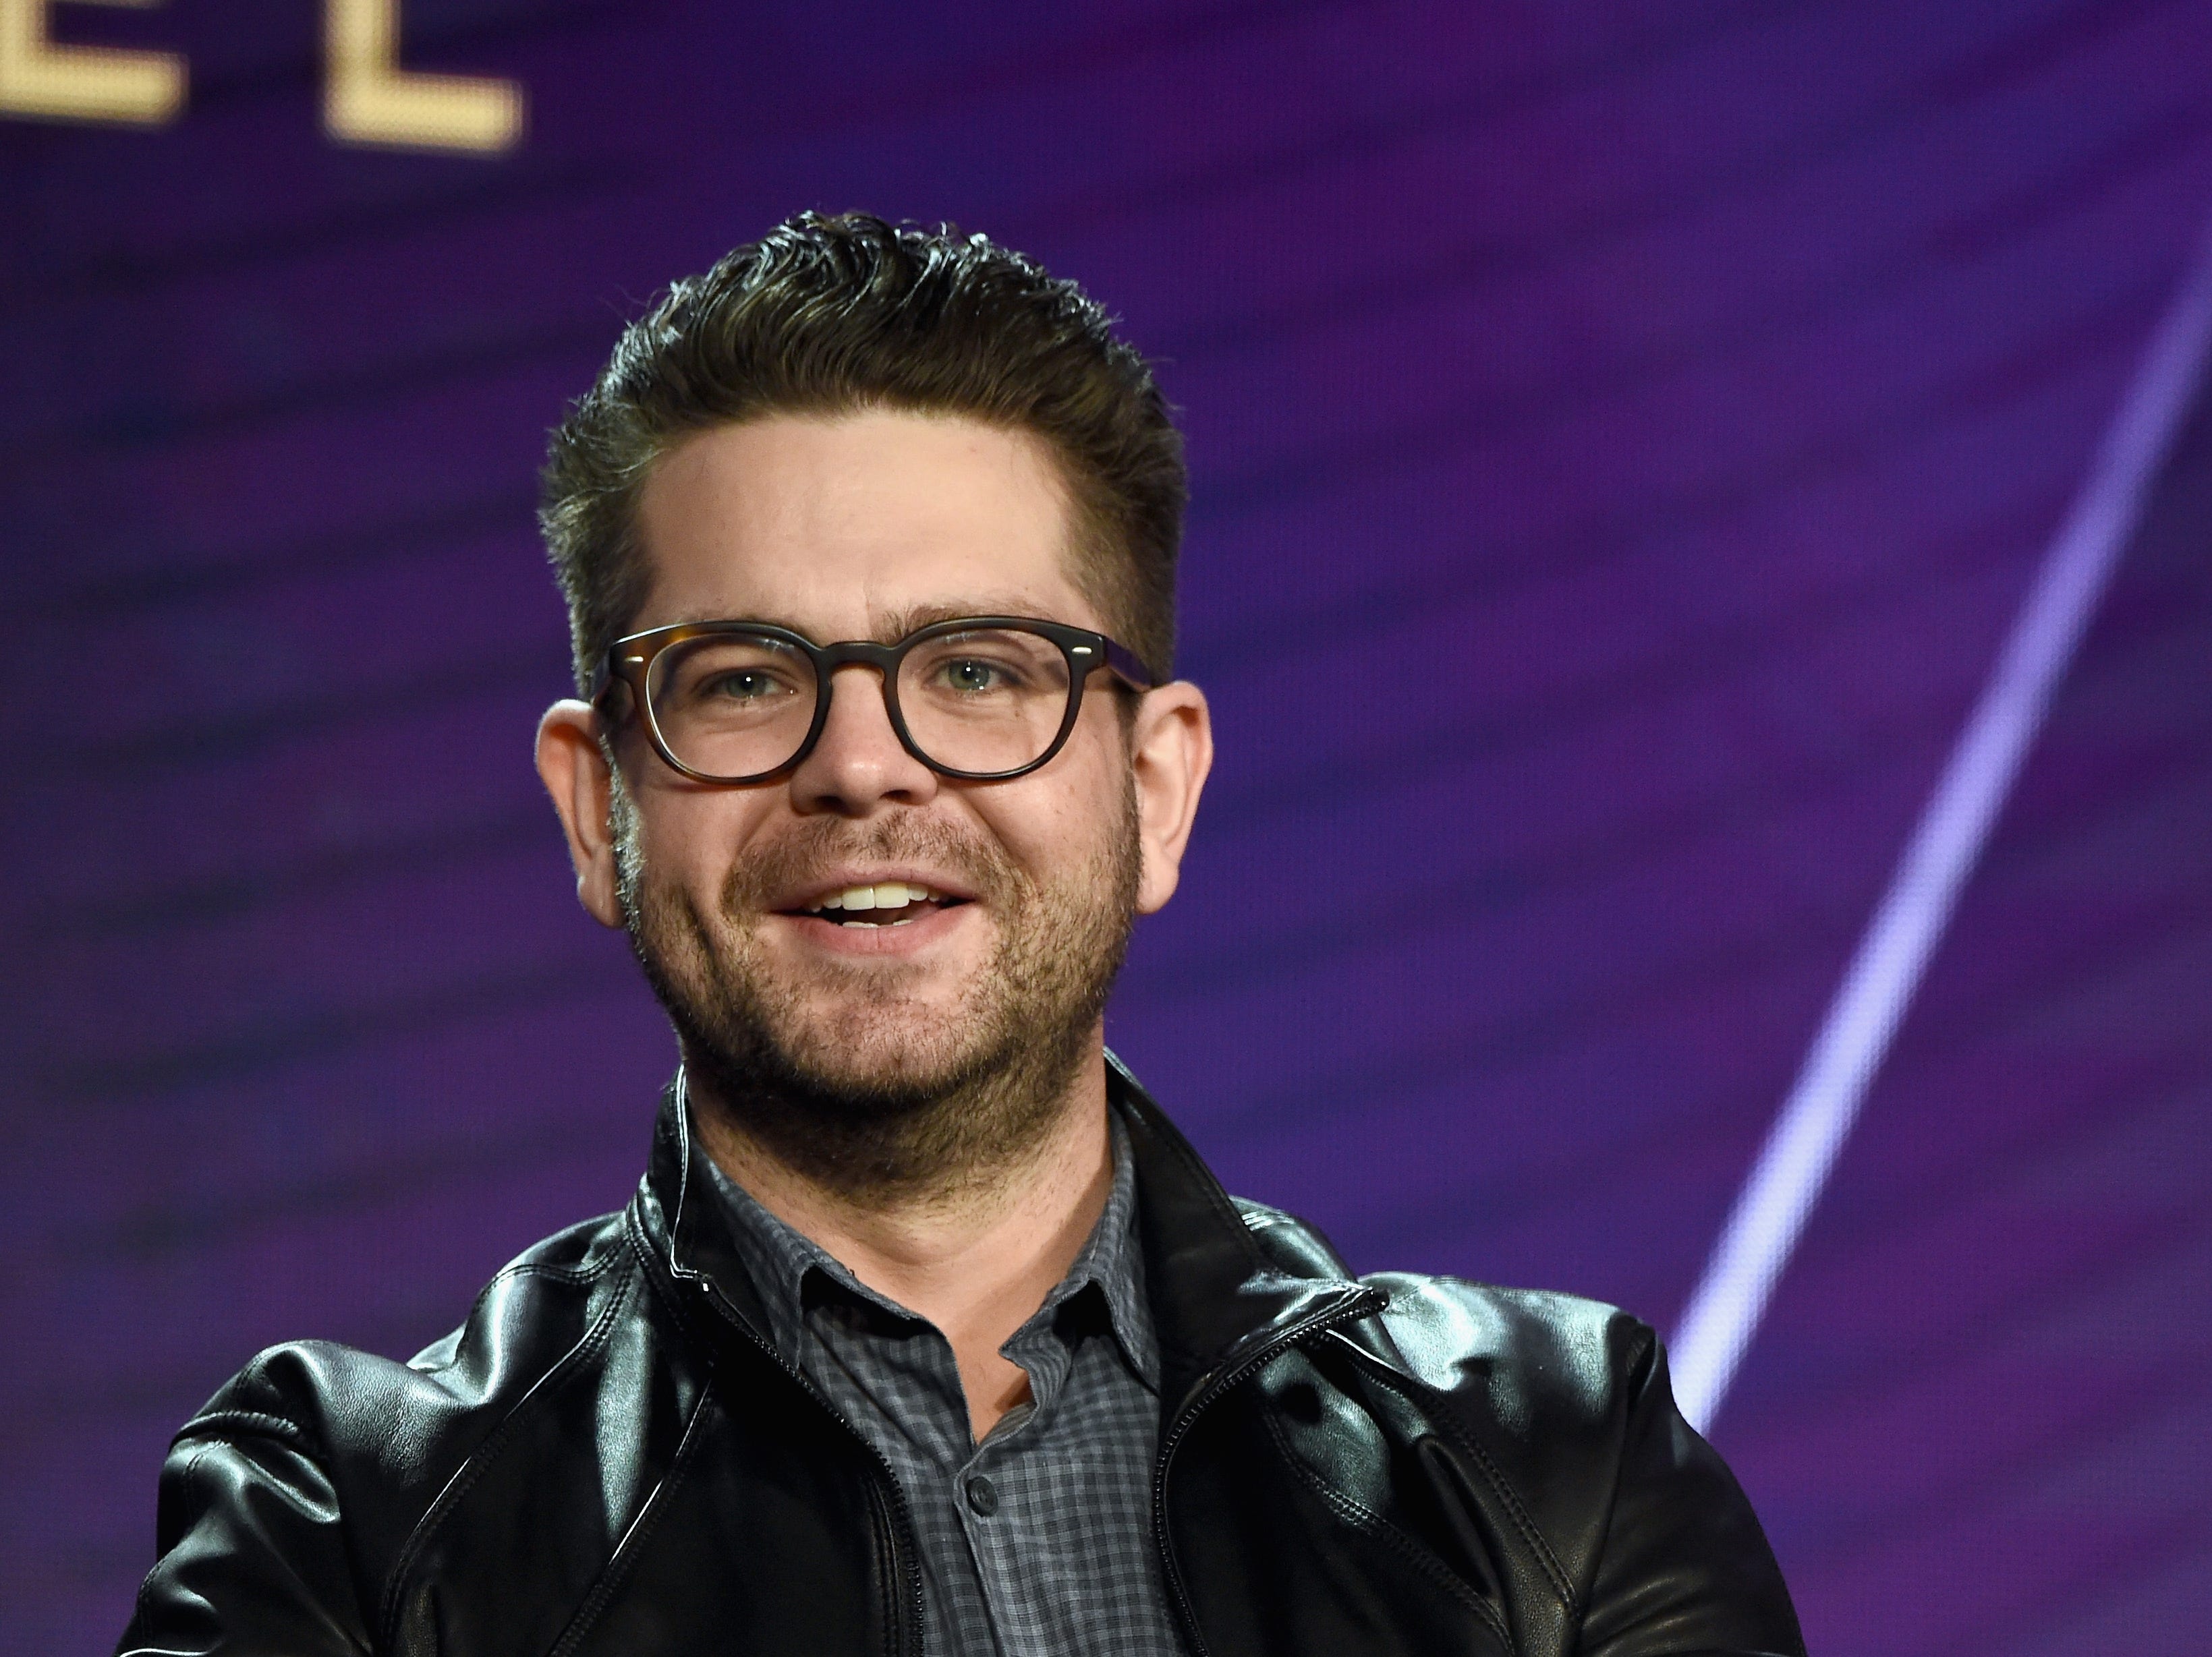 """Jack Osbourne discusses """"Portals To Hell,"""" which he is executive producing for the Travel Channel."""